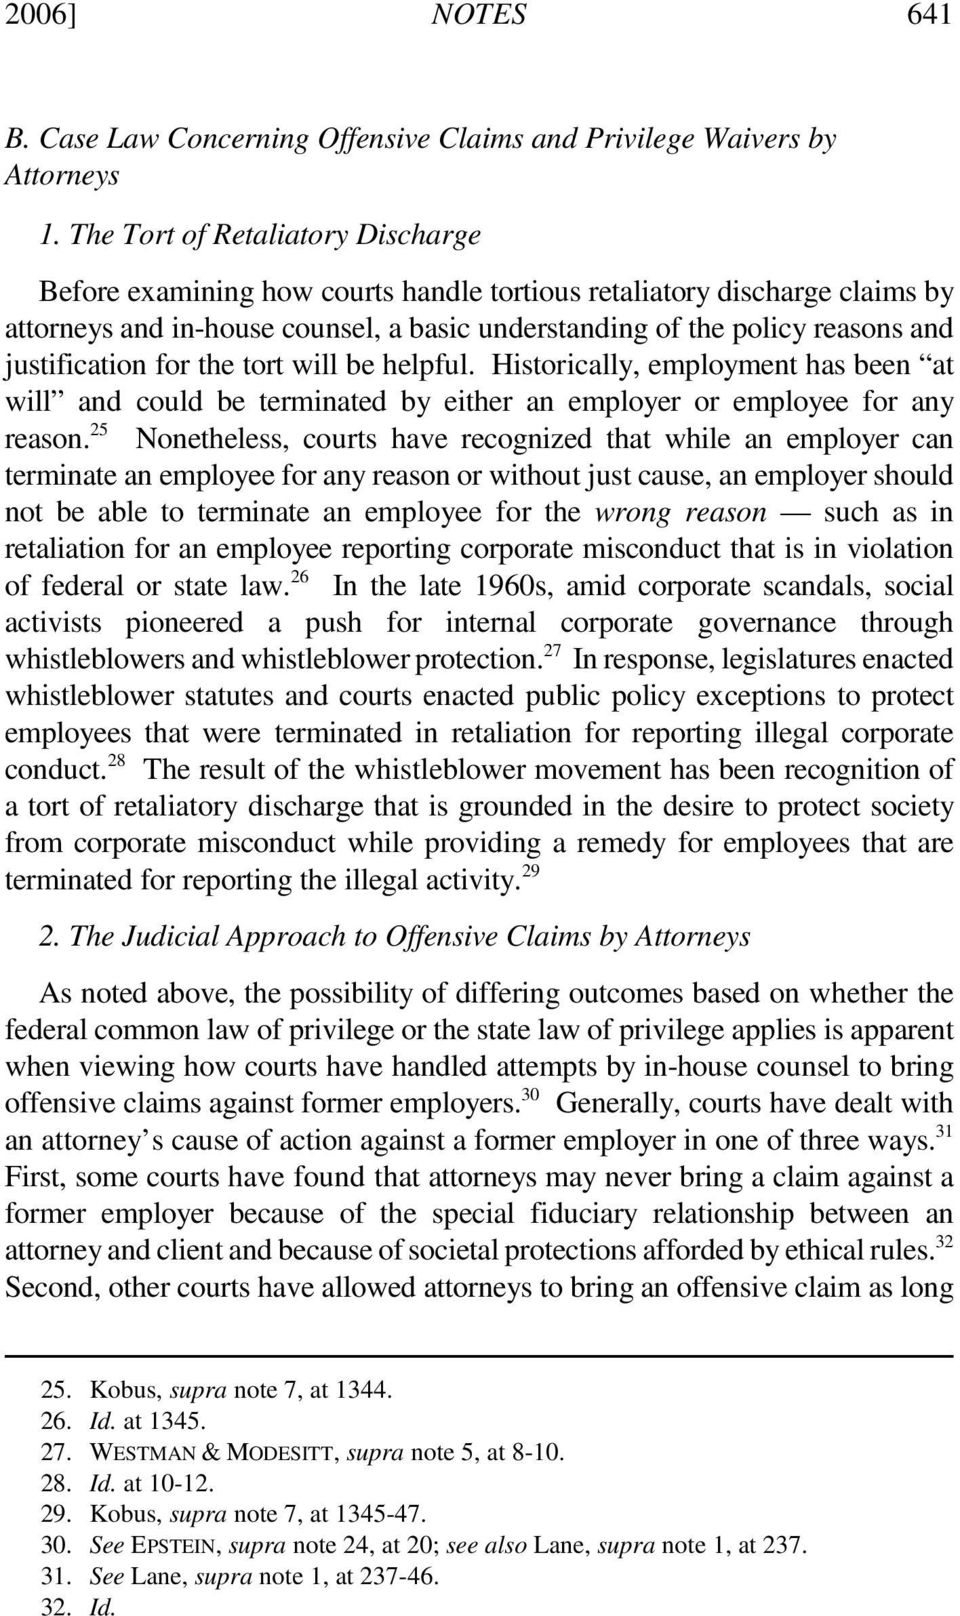 justification for the tort will be helpful. Historically, employment has been at will and could be terminated by either an employer or employee for any reason.